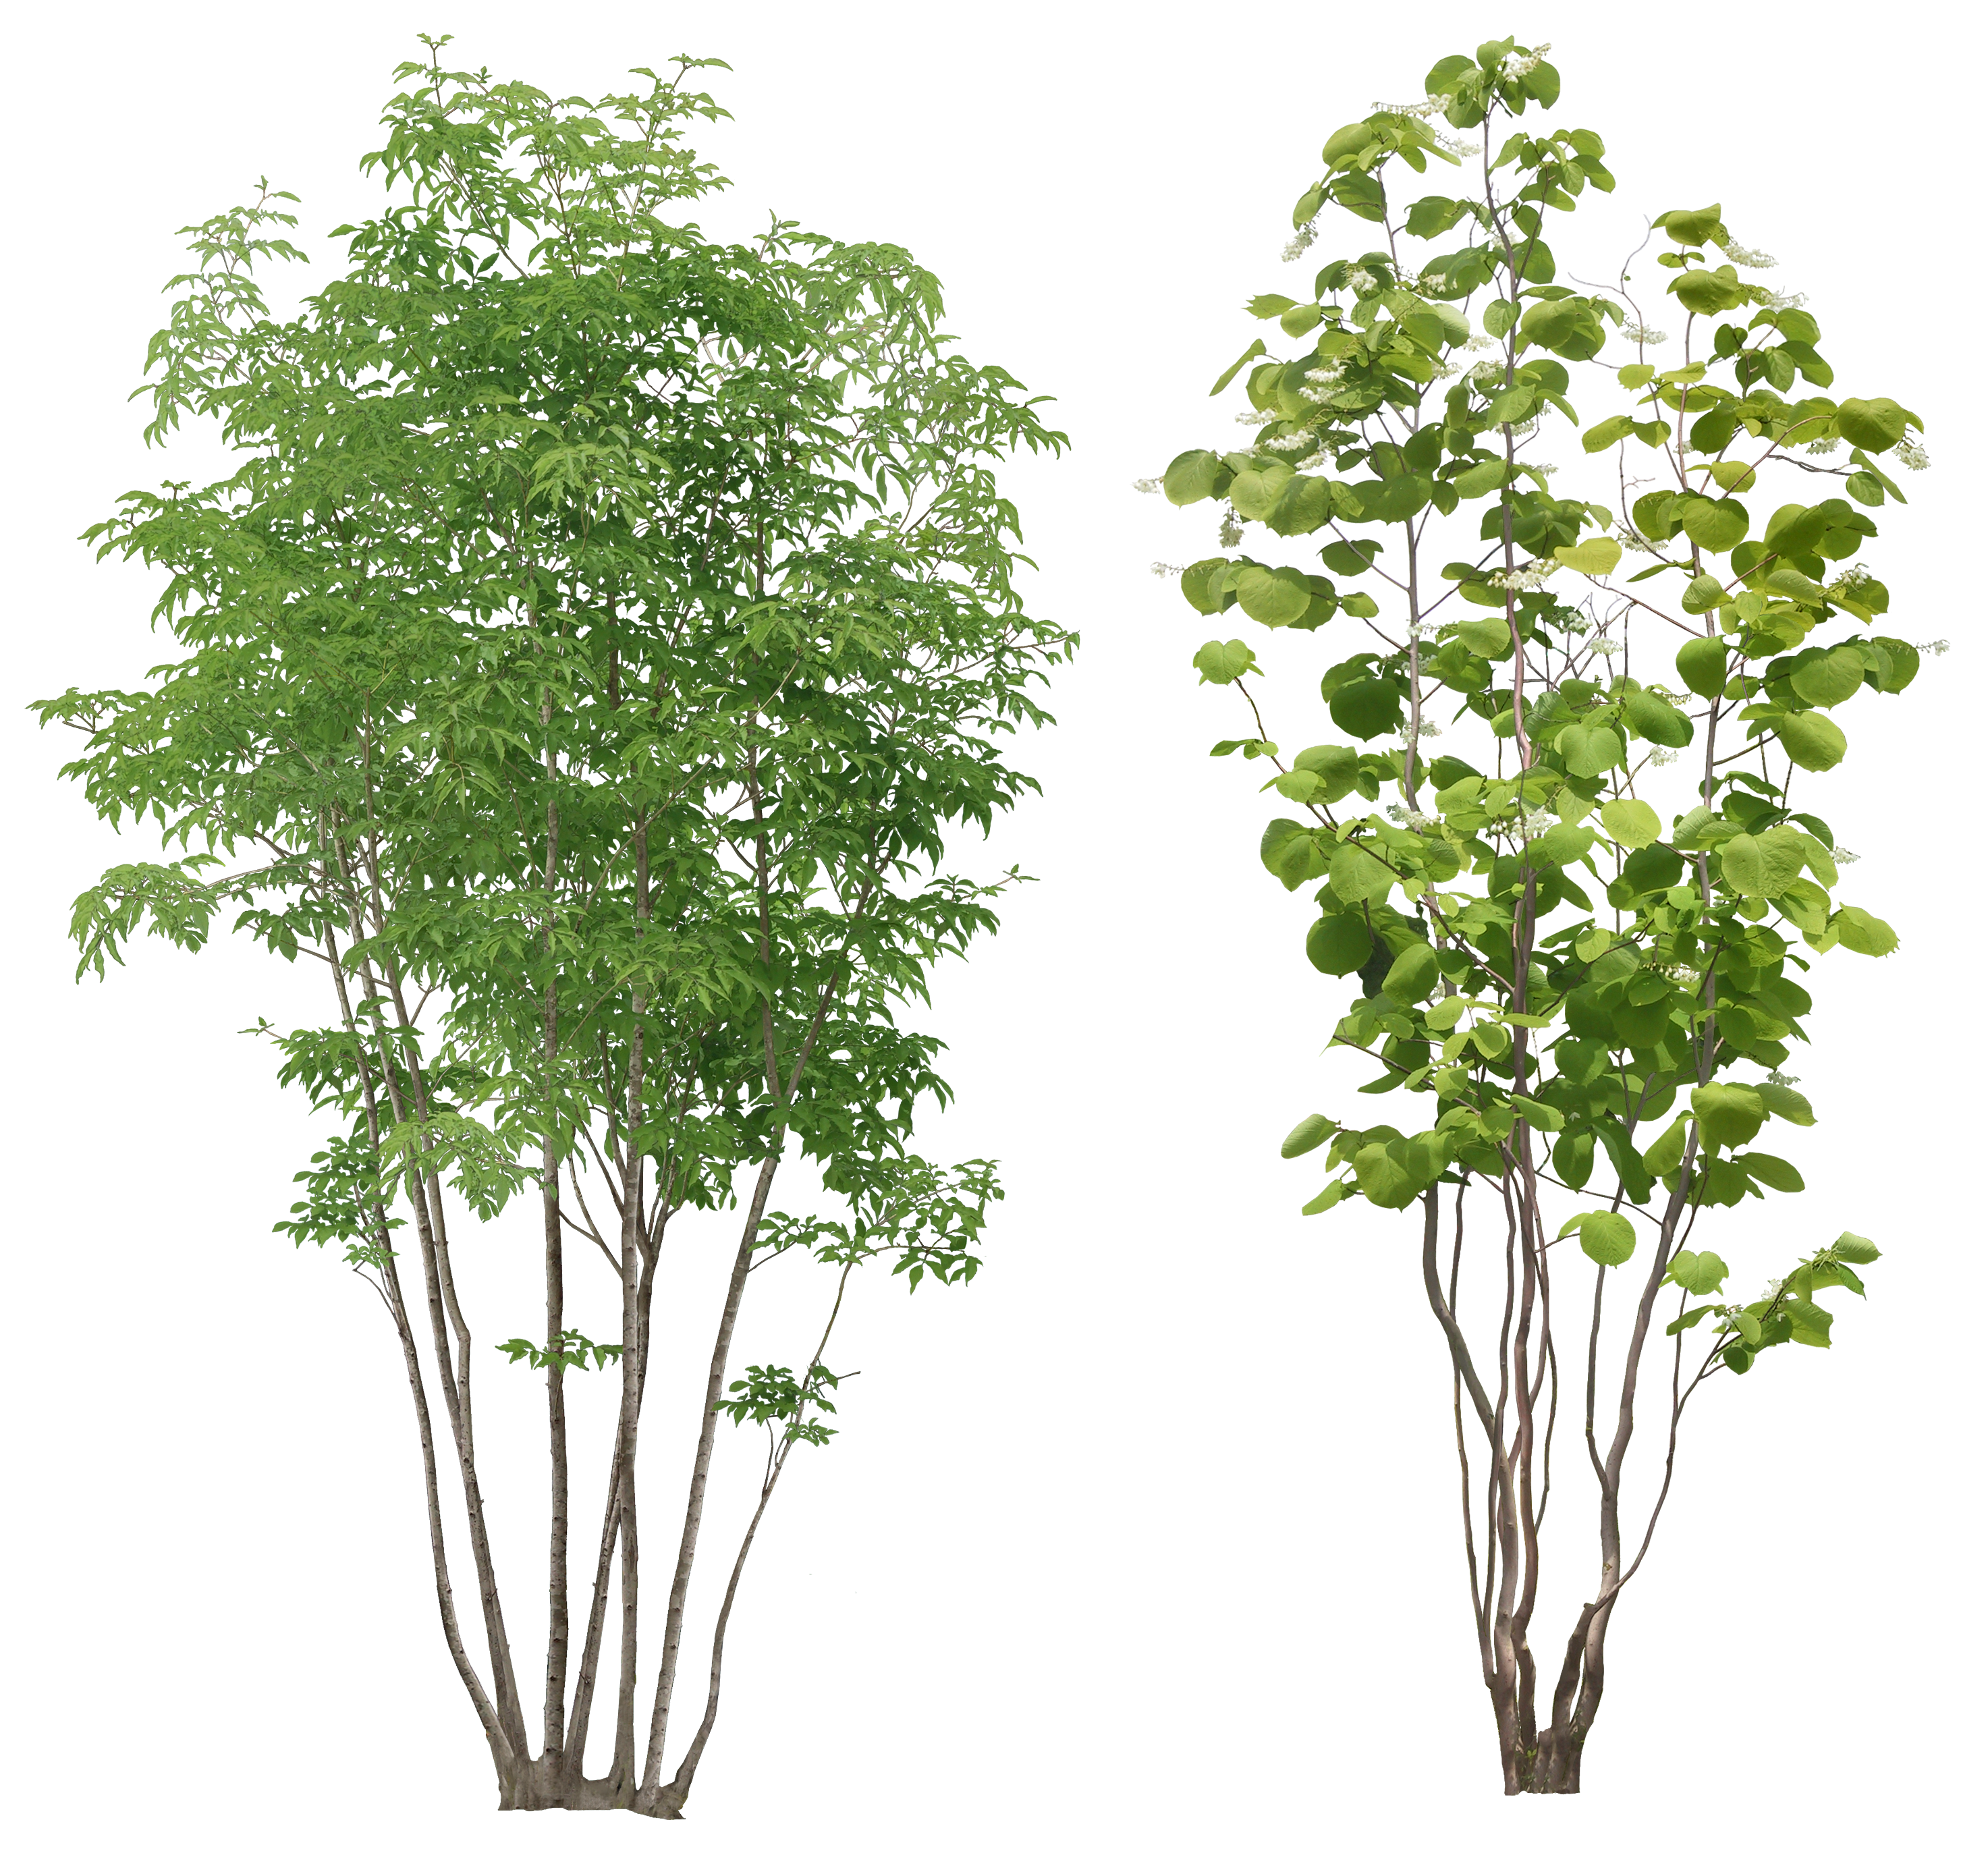 Trees png images. Tree image id photo